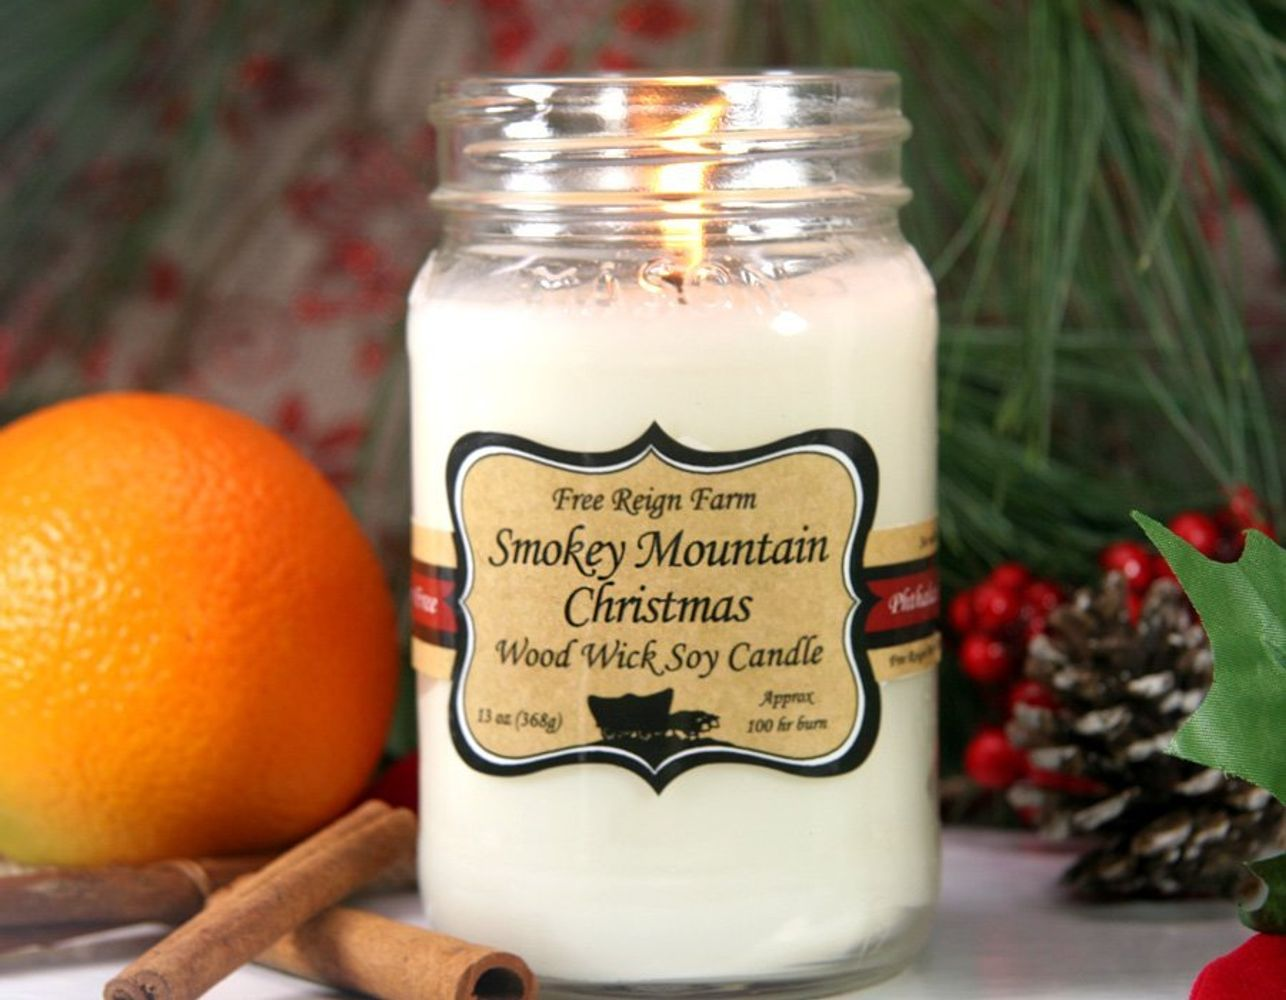 Smokey Mountain Christmas - Wood Wick Candles